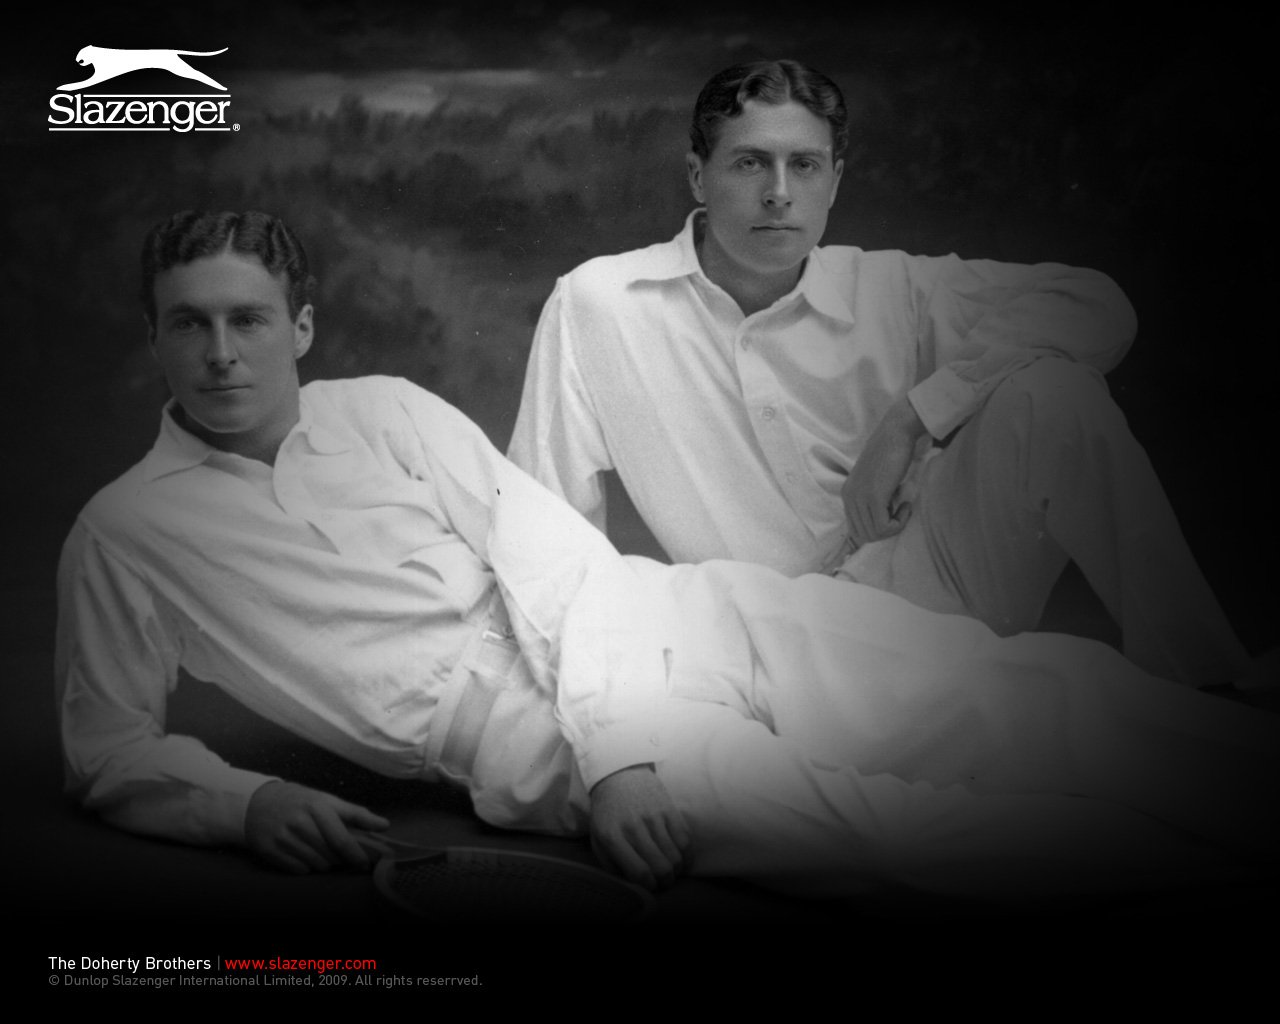 1280x1024 - The Doherty Brothers Wallpapers 2